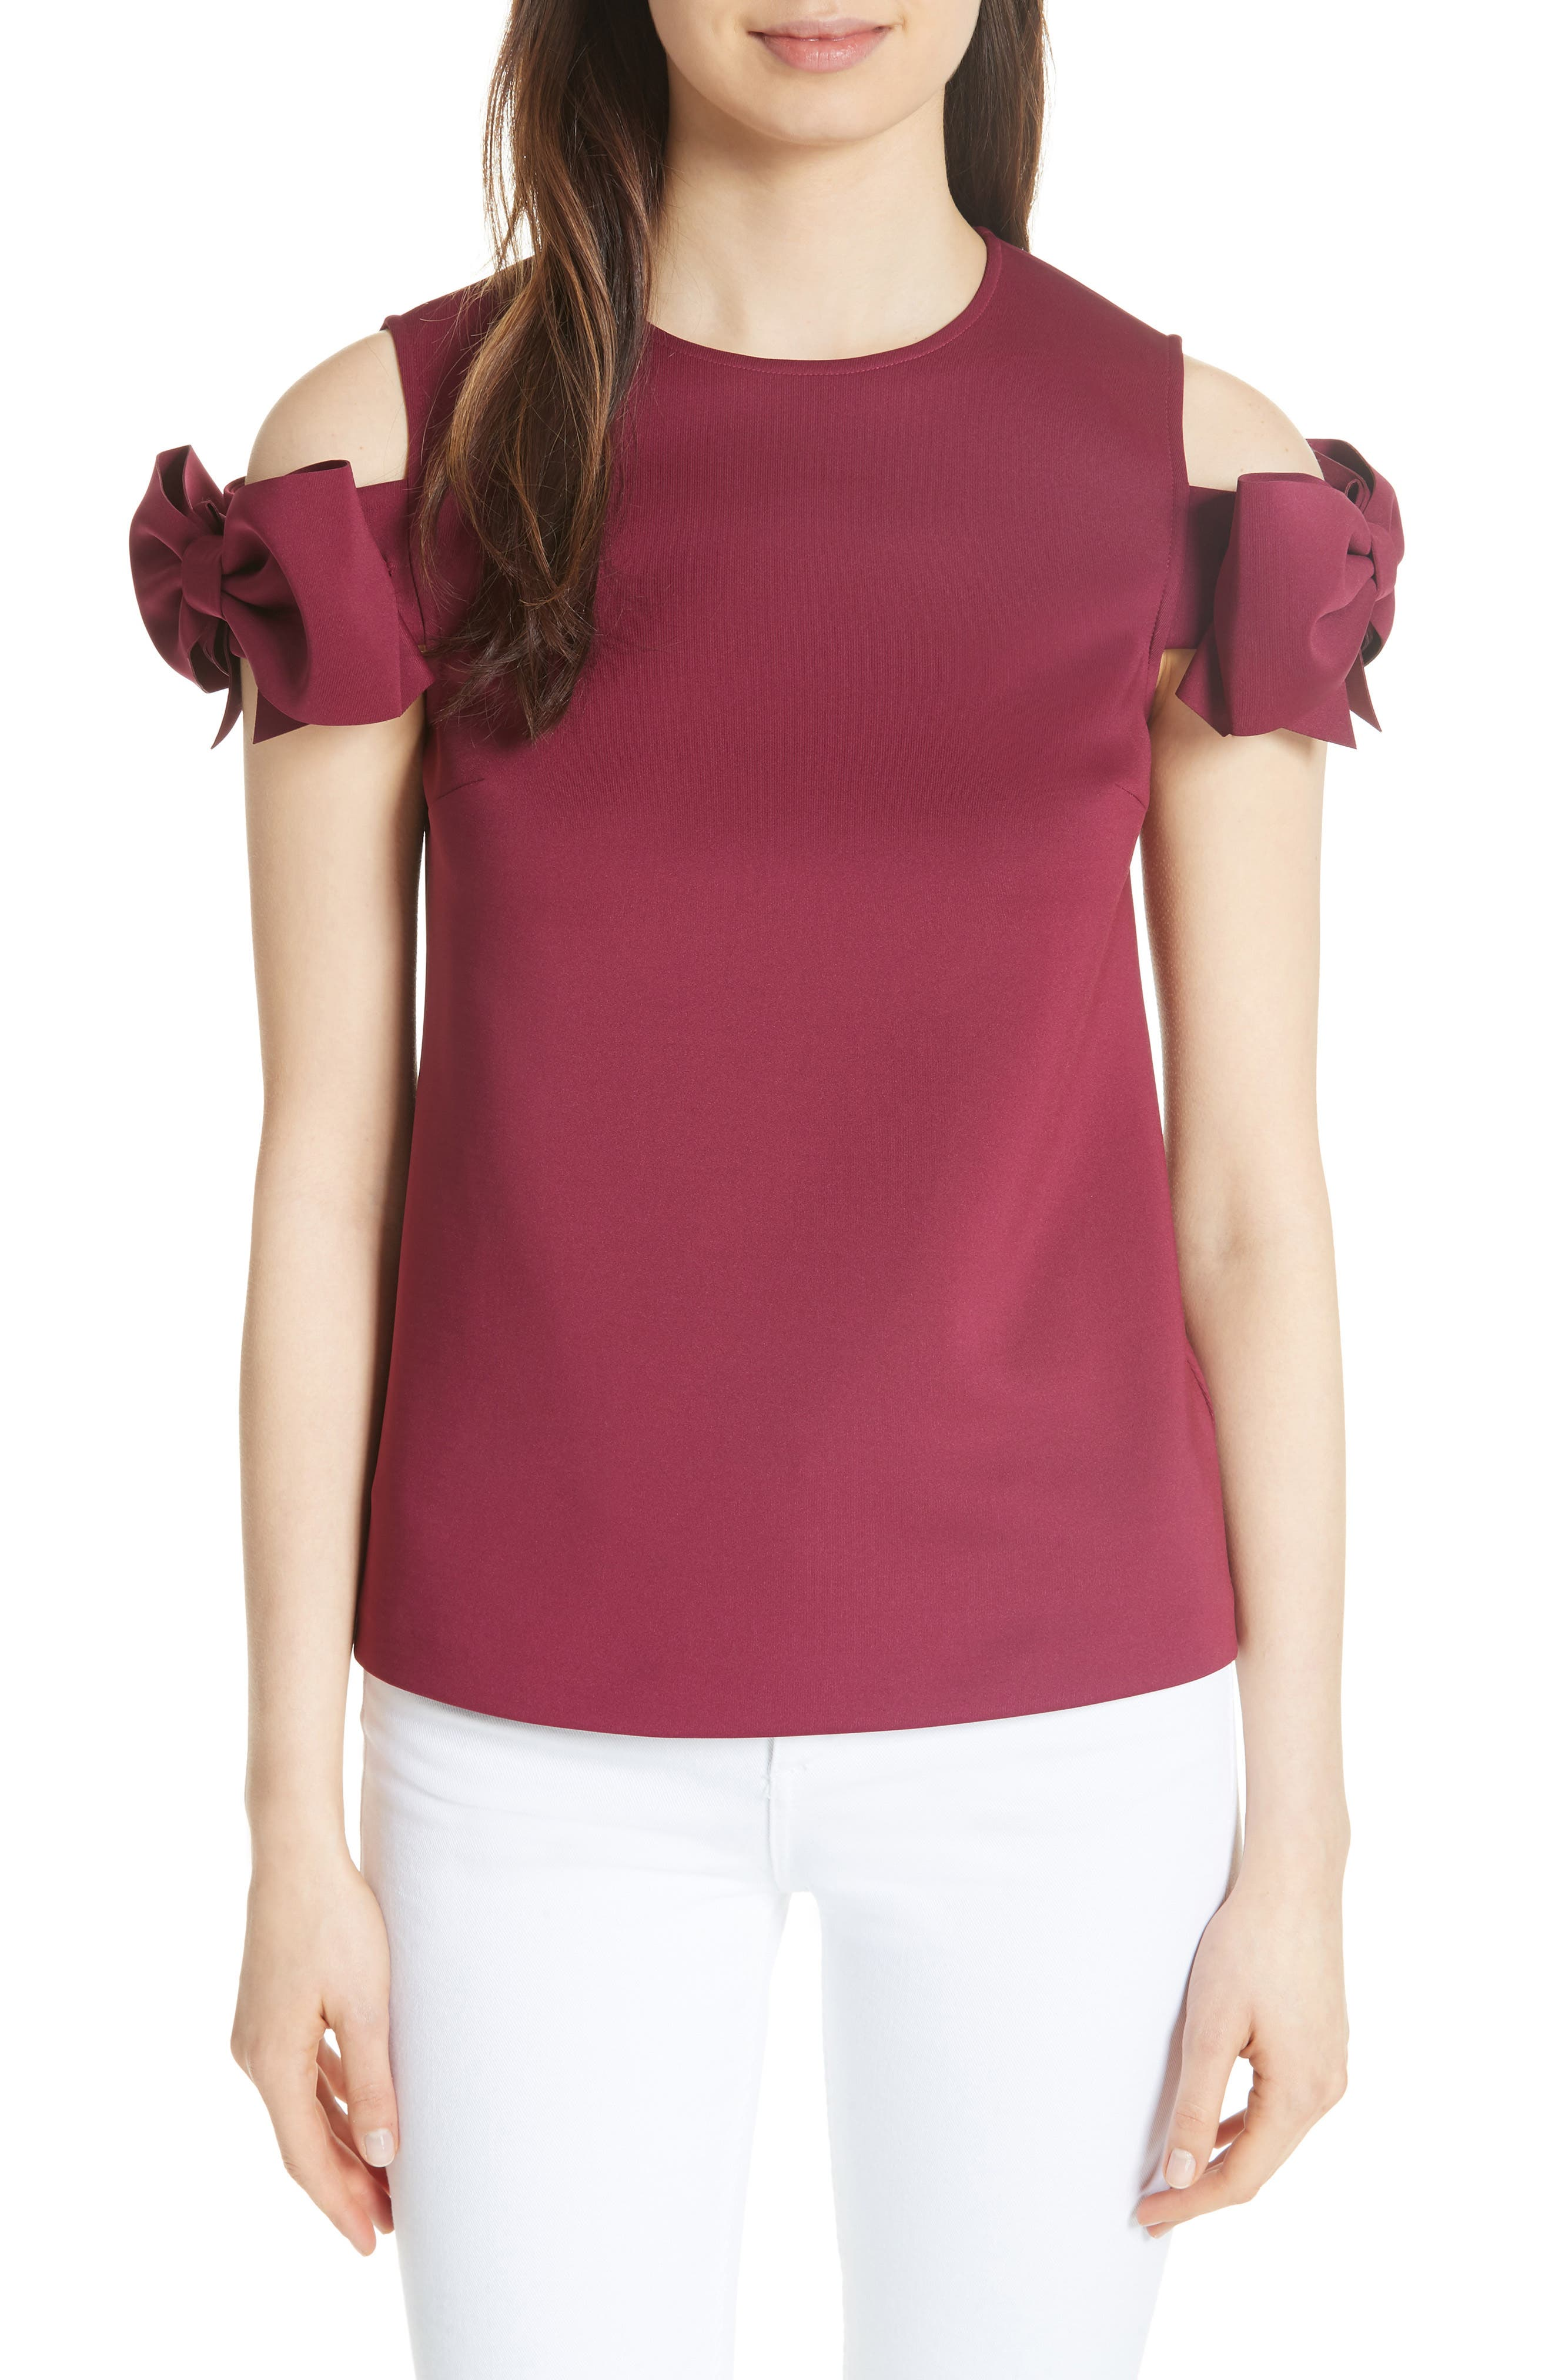 Mendoll Bow Sleeve Cold Shoulder Top,                         Main,                         color, Maroon